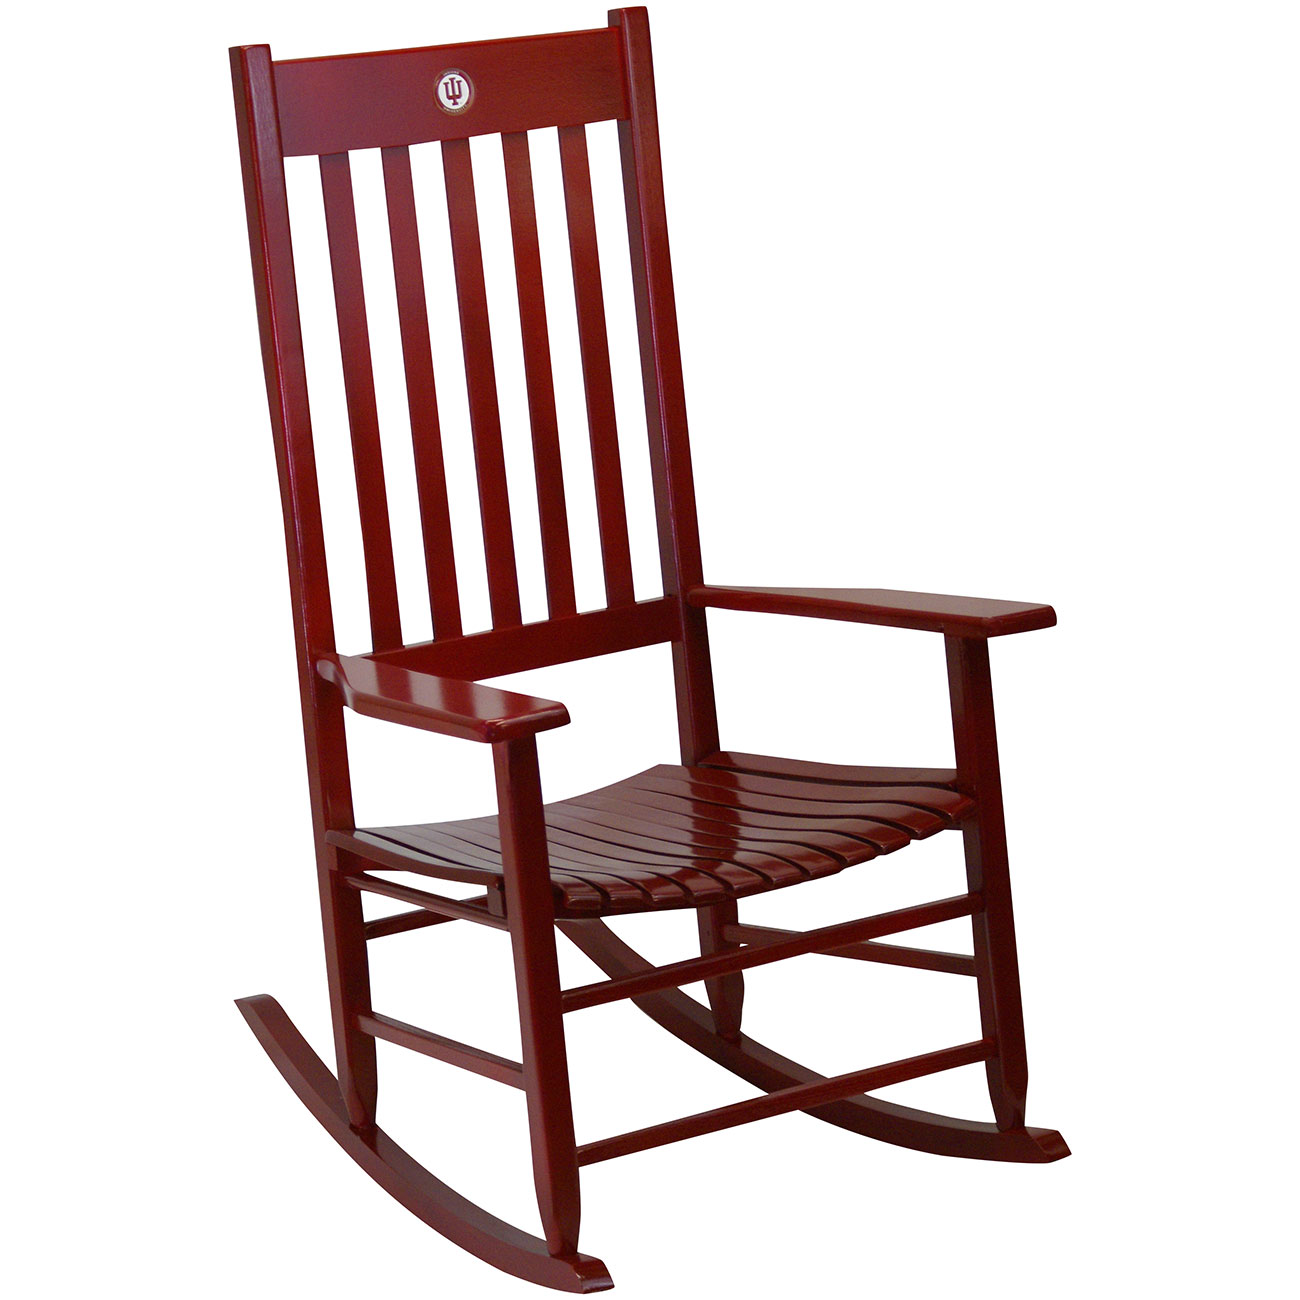 Admirable Team Color Rocking Chair Indiana Dailytribune Chair Design For Home Dailytribuneorg